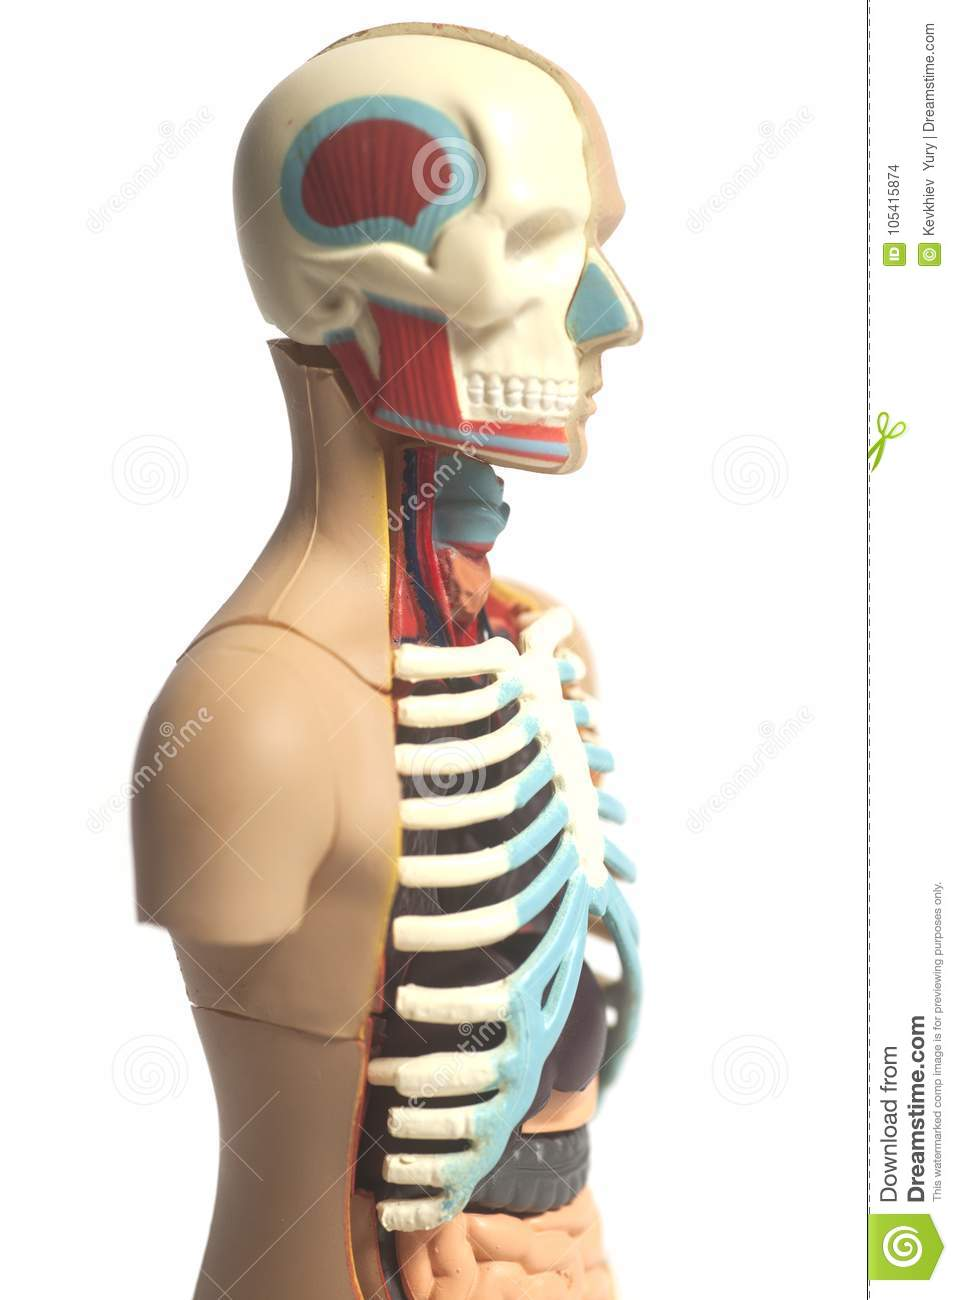 Human Body Anatomy Model Stock Photo Image Of Cage 105415874